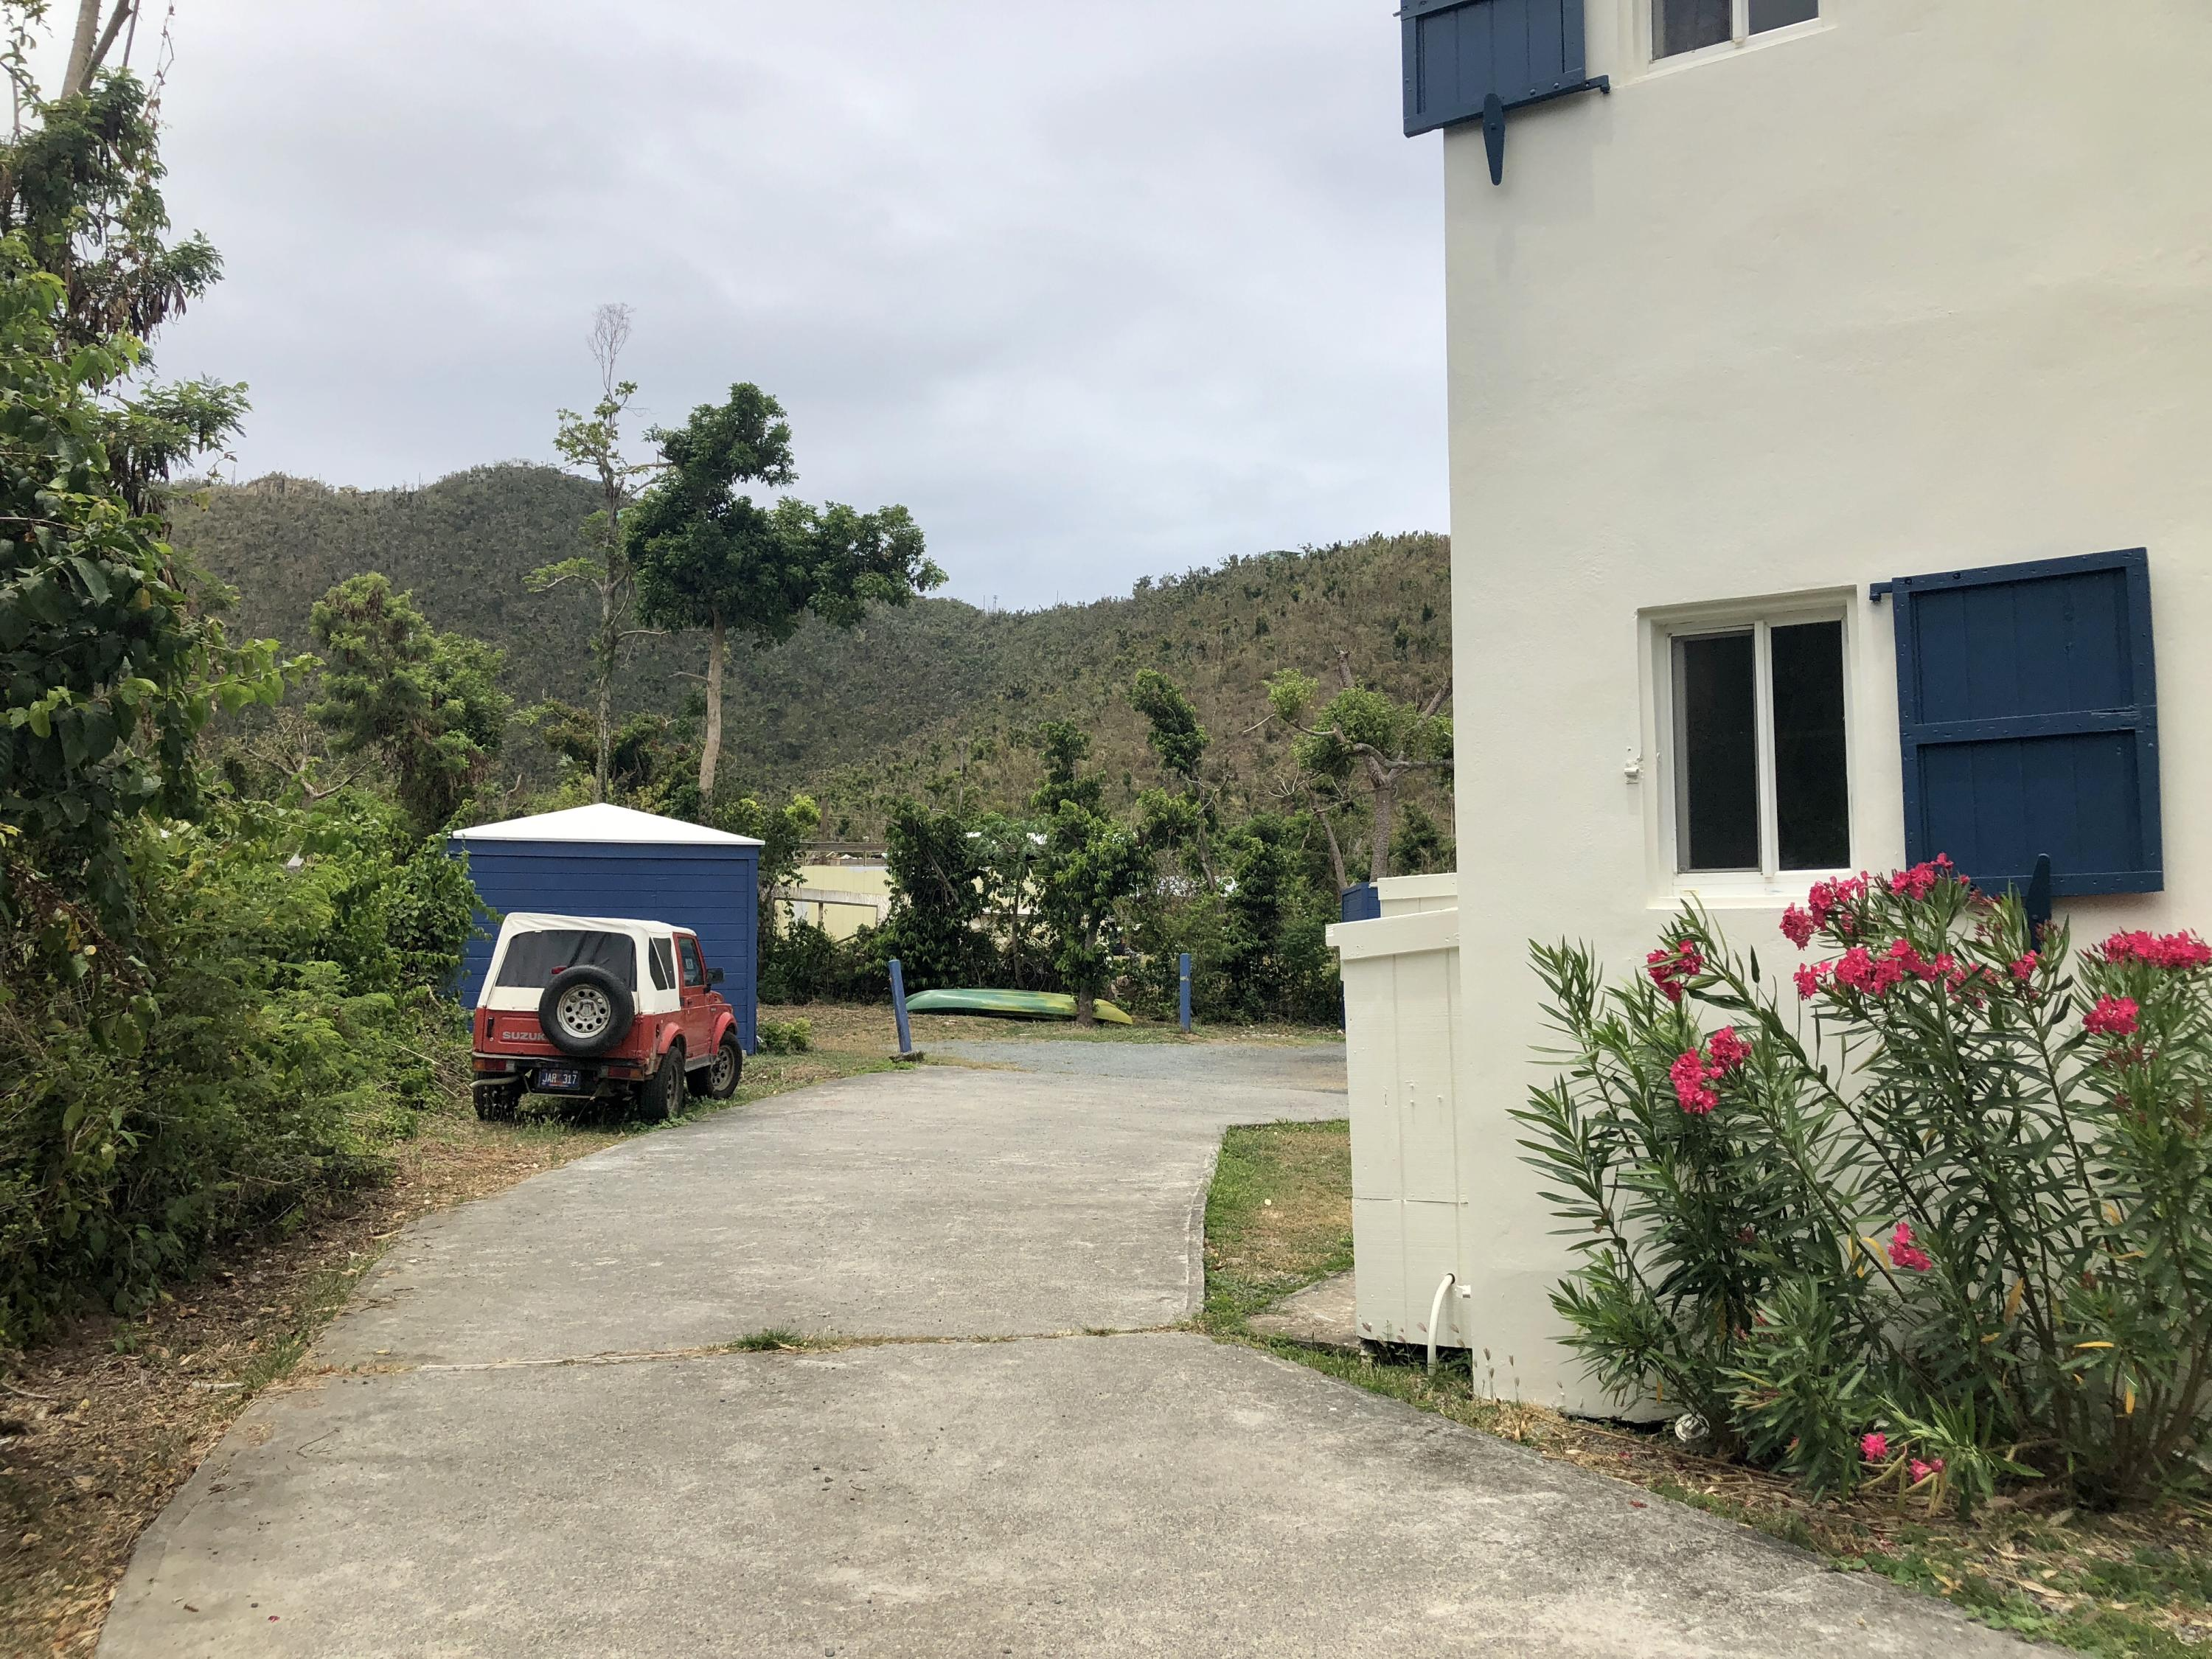 Driveway with Ample Parking Space